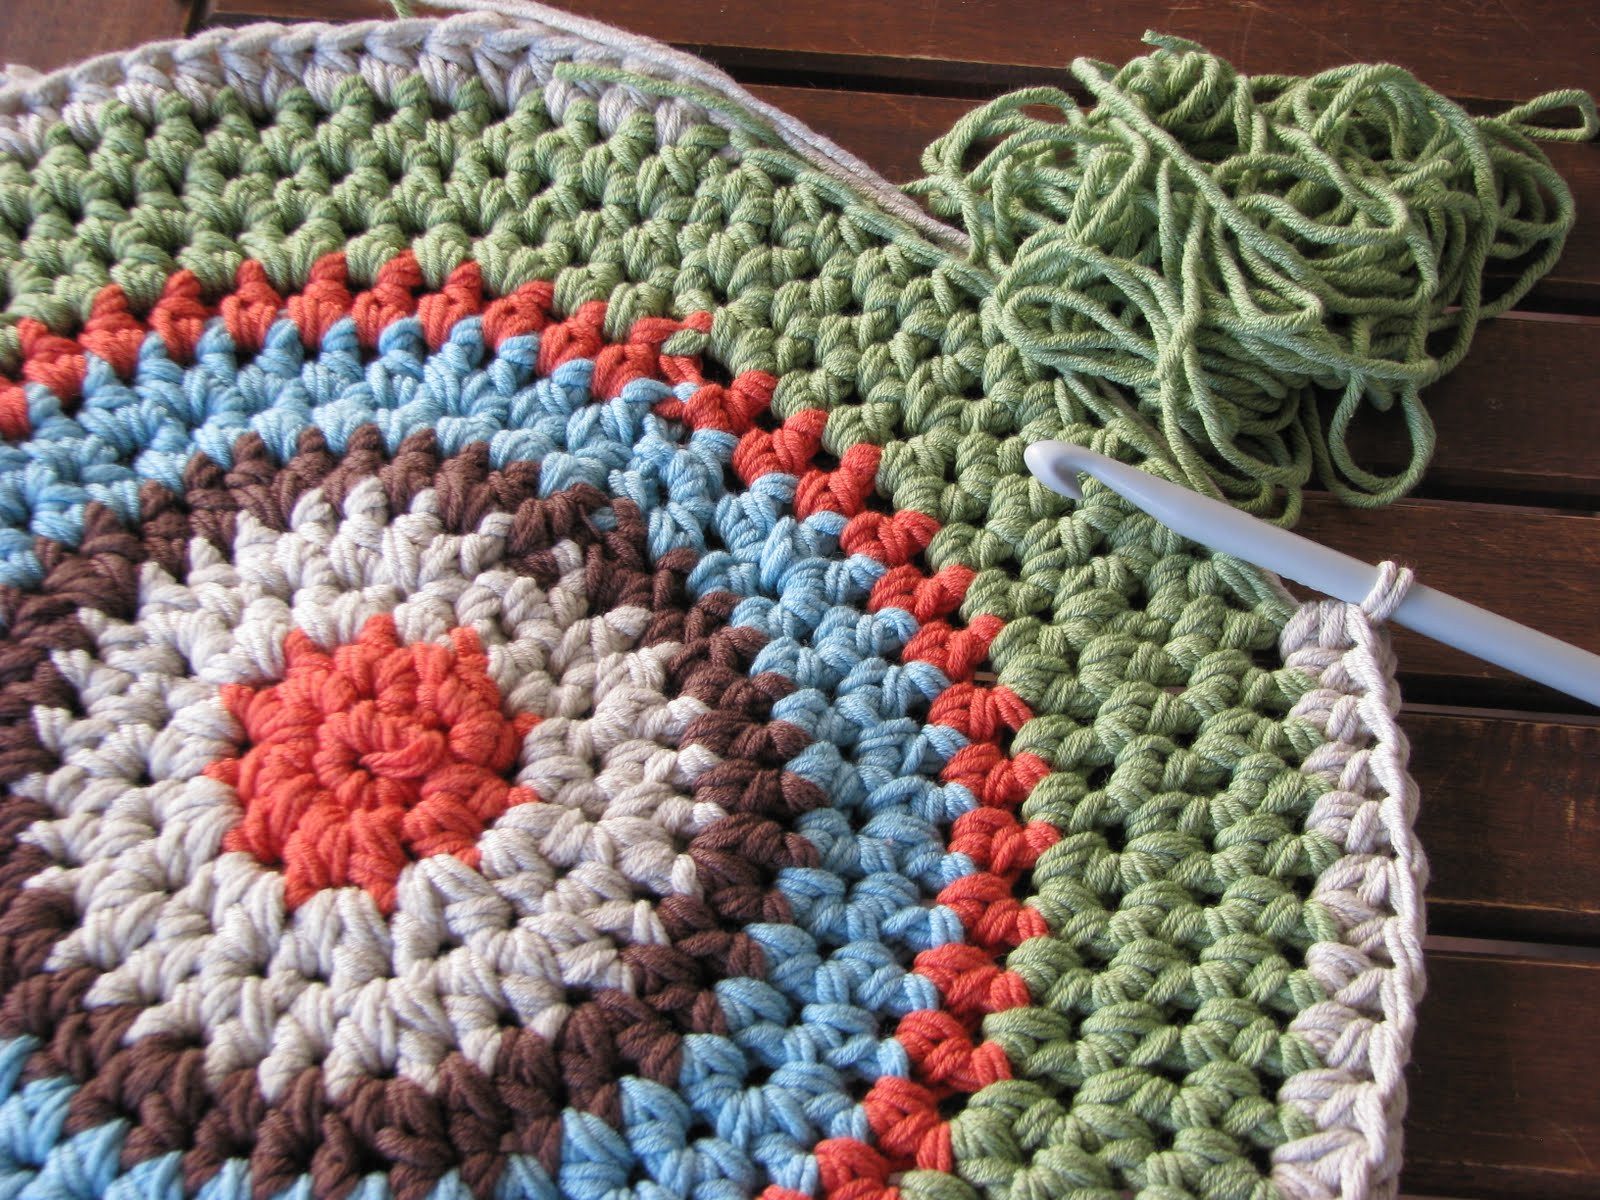 Knitting and Crochet Lovely Crochet Yarn Rug Pattern – Crochet Club Of Amazing 45 Photos Knitting and Crochet